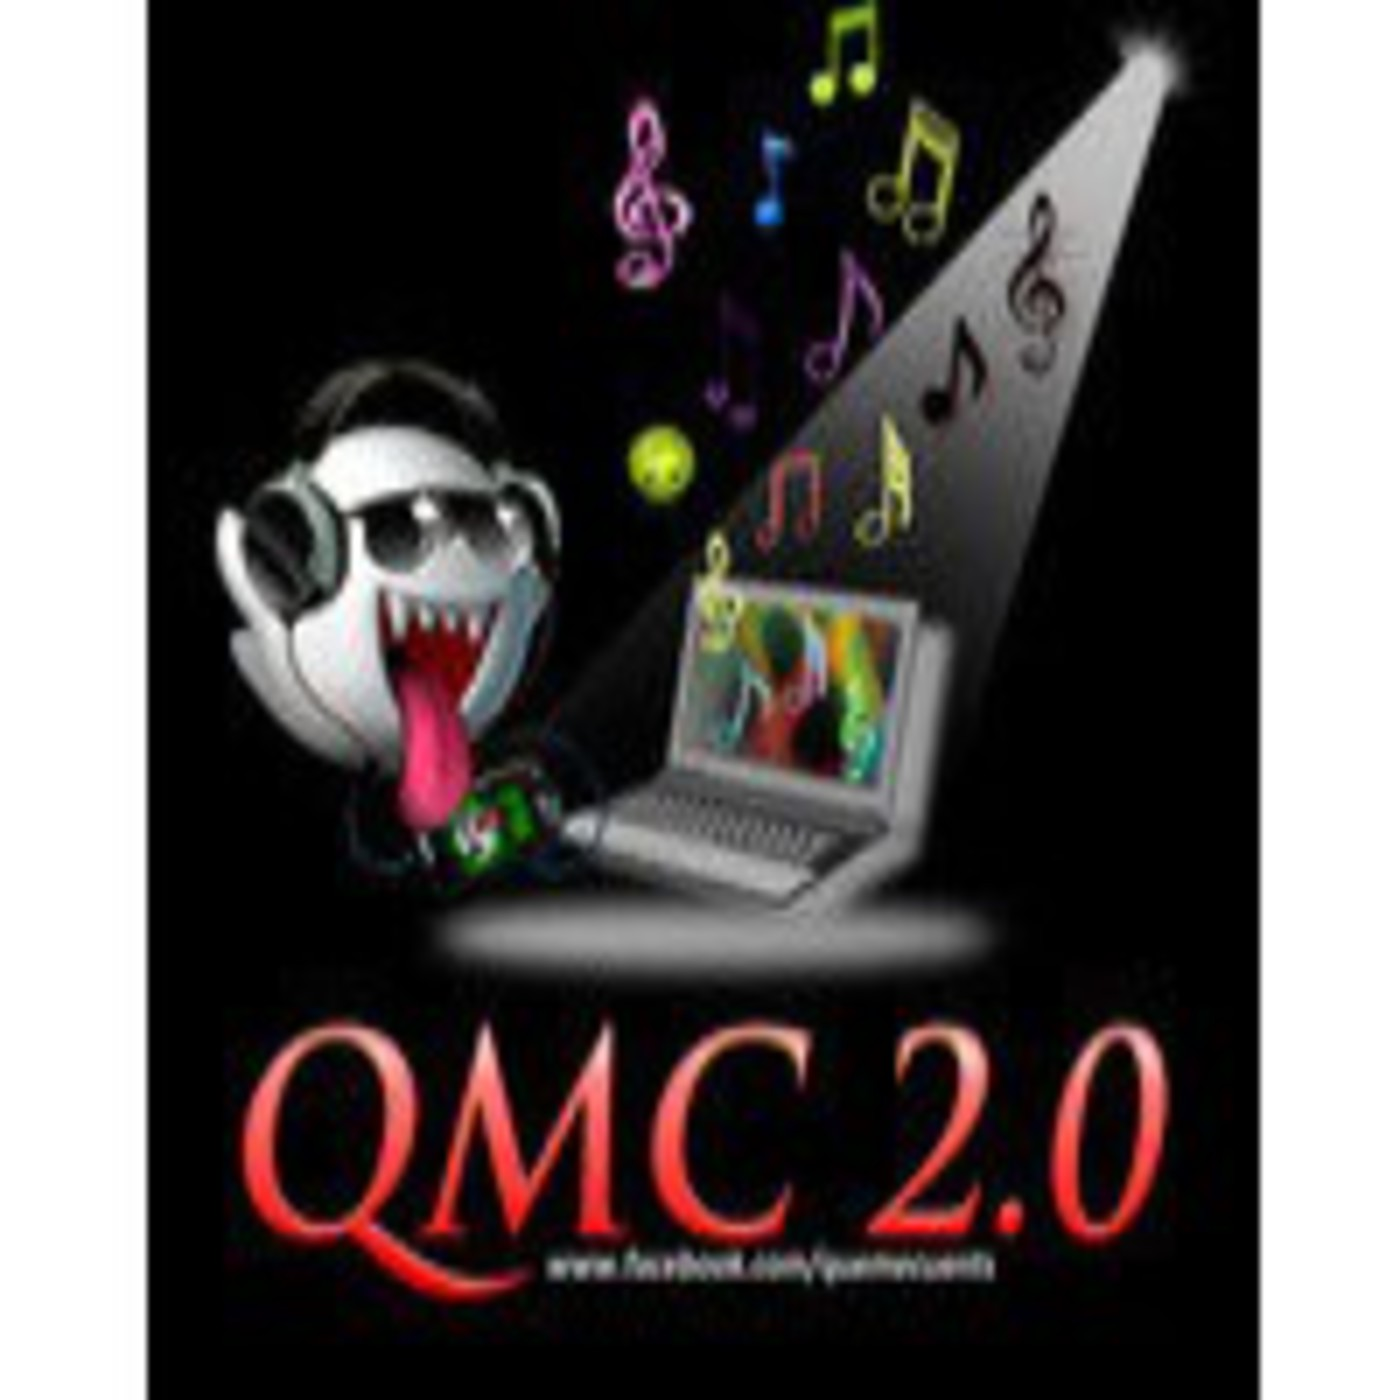 QMC 2.0-Programa 01-Radio Enlace 107,5fm-Madrid